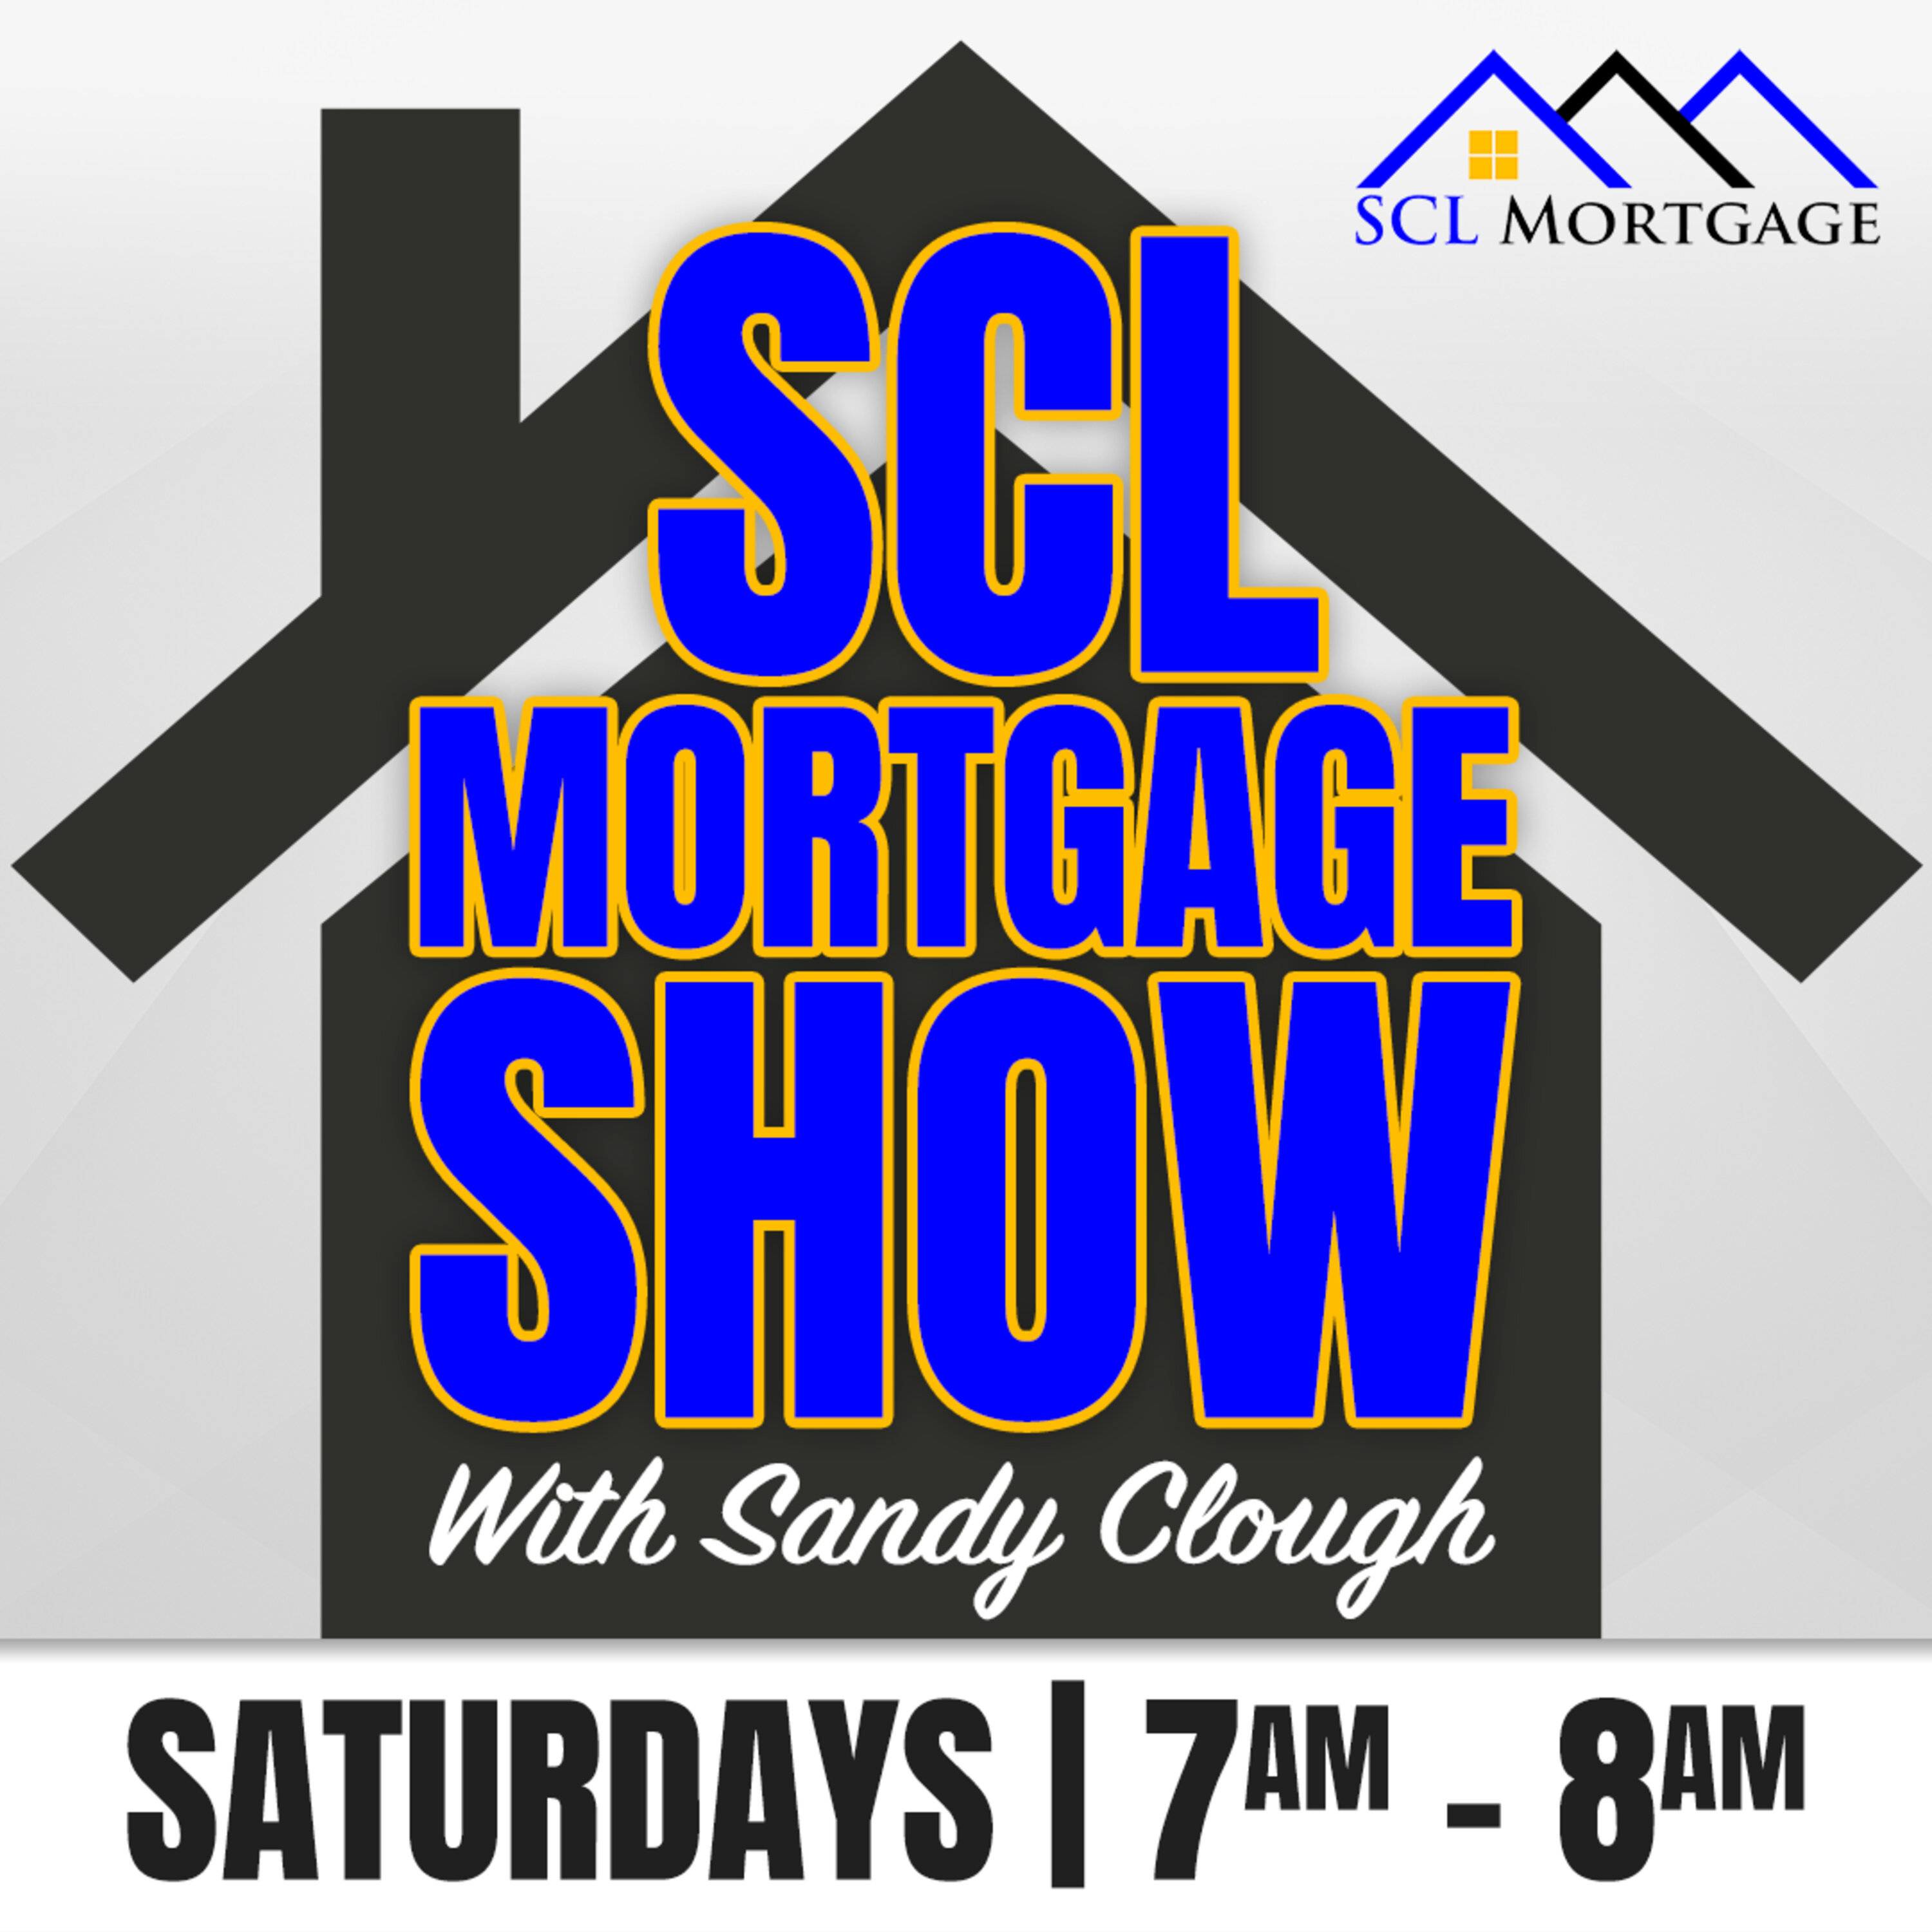 SCL Mortgage Show Cover Image